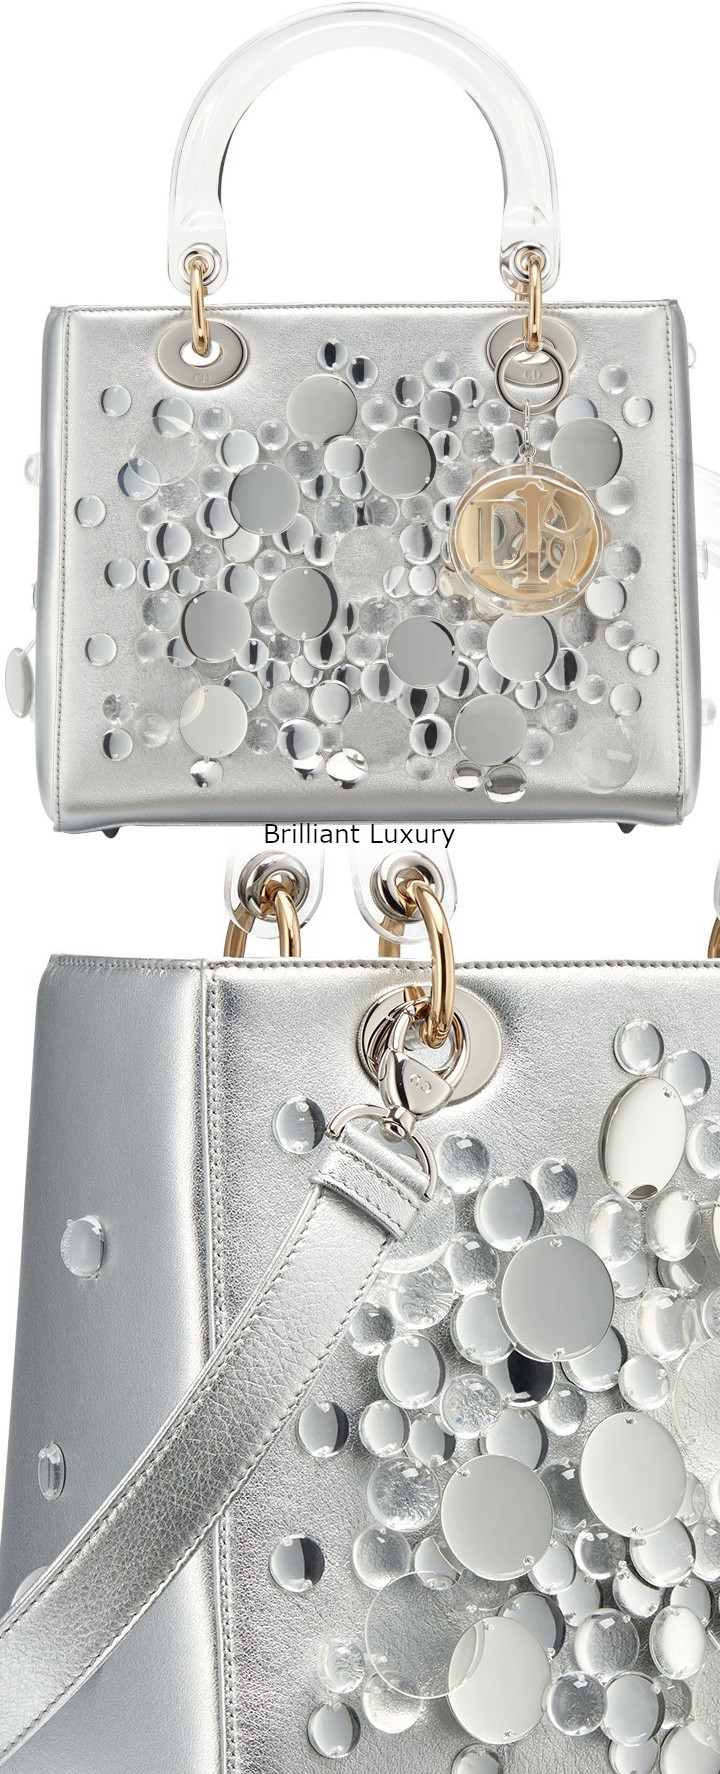 Brilliant Luxury│Lady DIOR Art Bag in silver color metallized lambskin, embroidered with transparent lenses, Designer Haruka Kojin